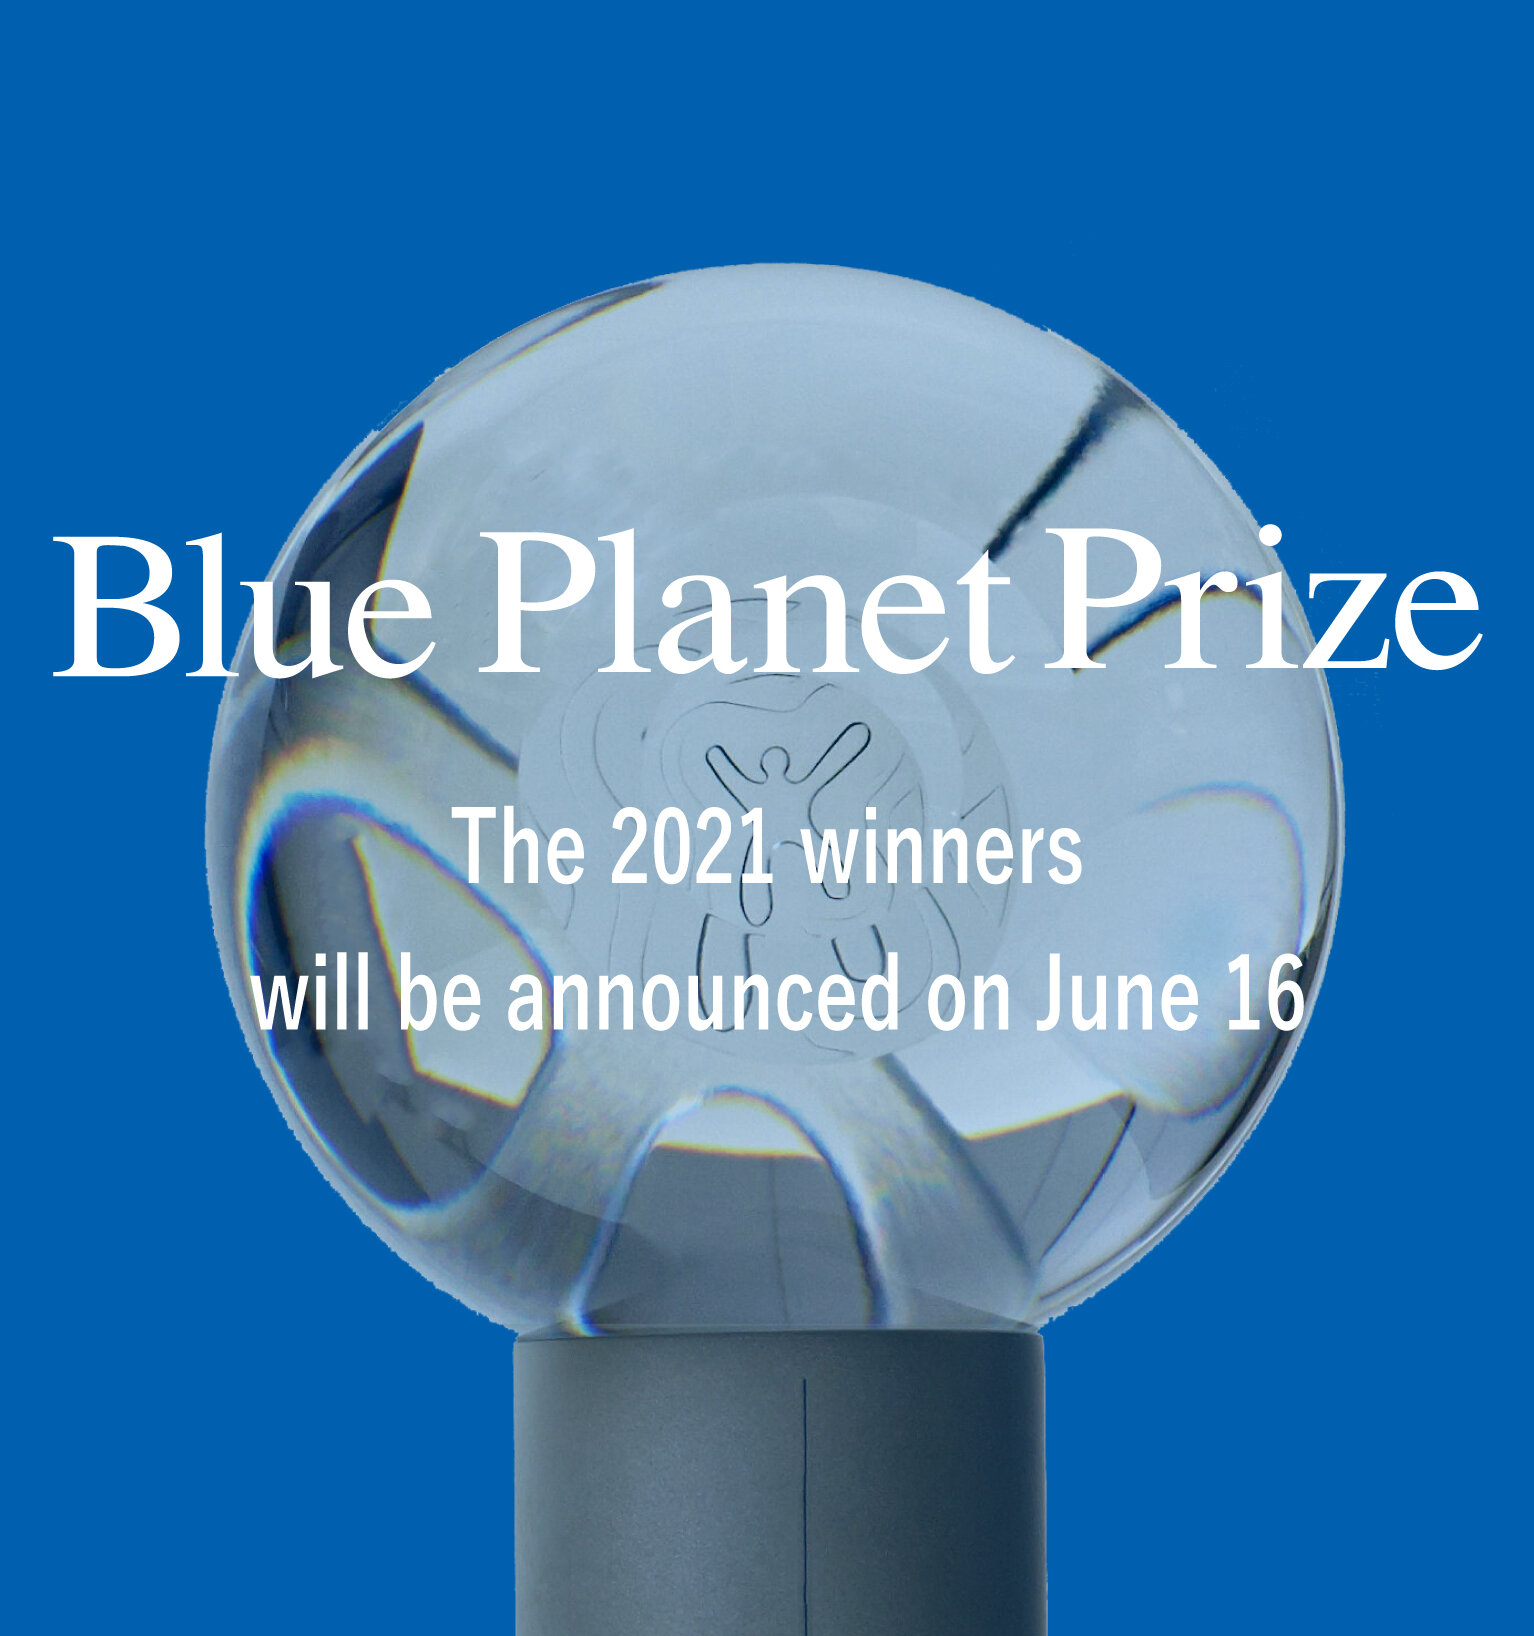 The 2021 Blue Planet Prize winners will be announced on June 16